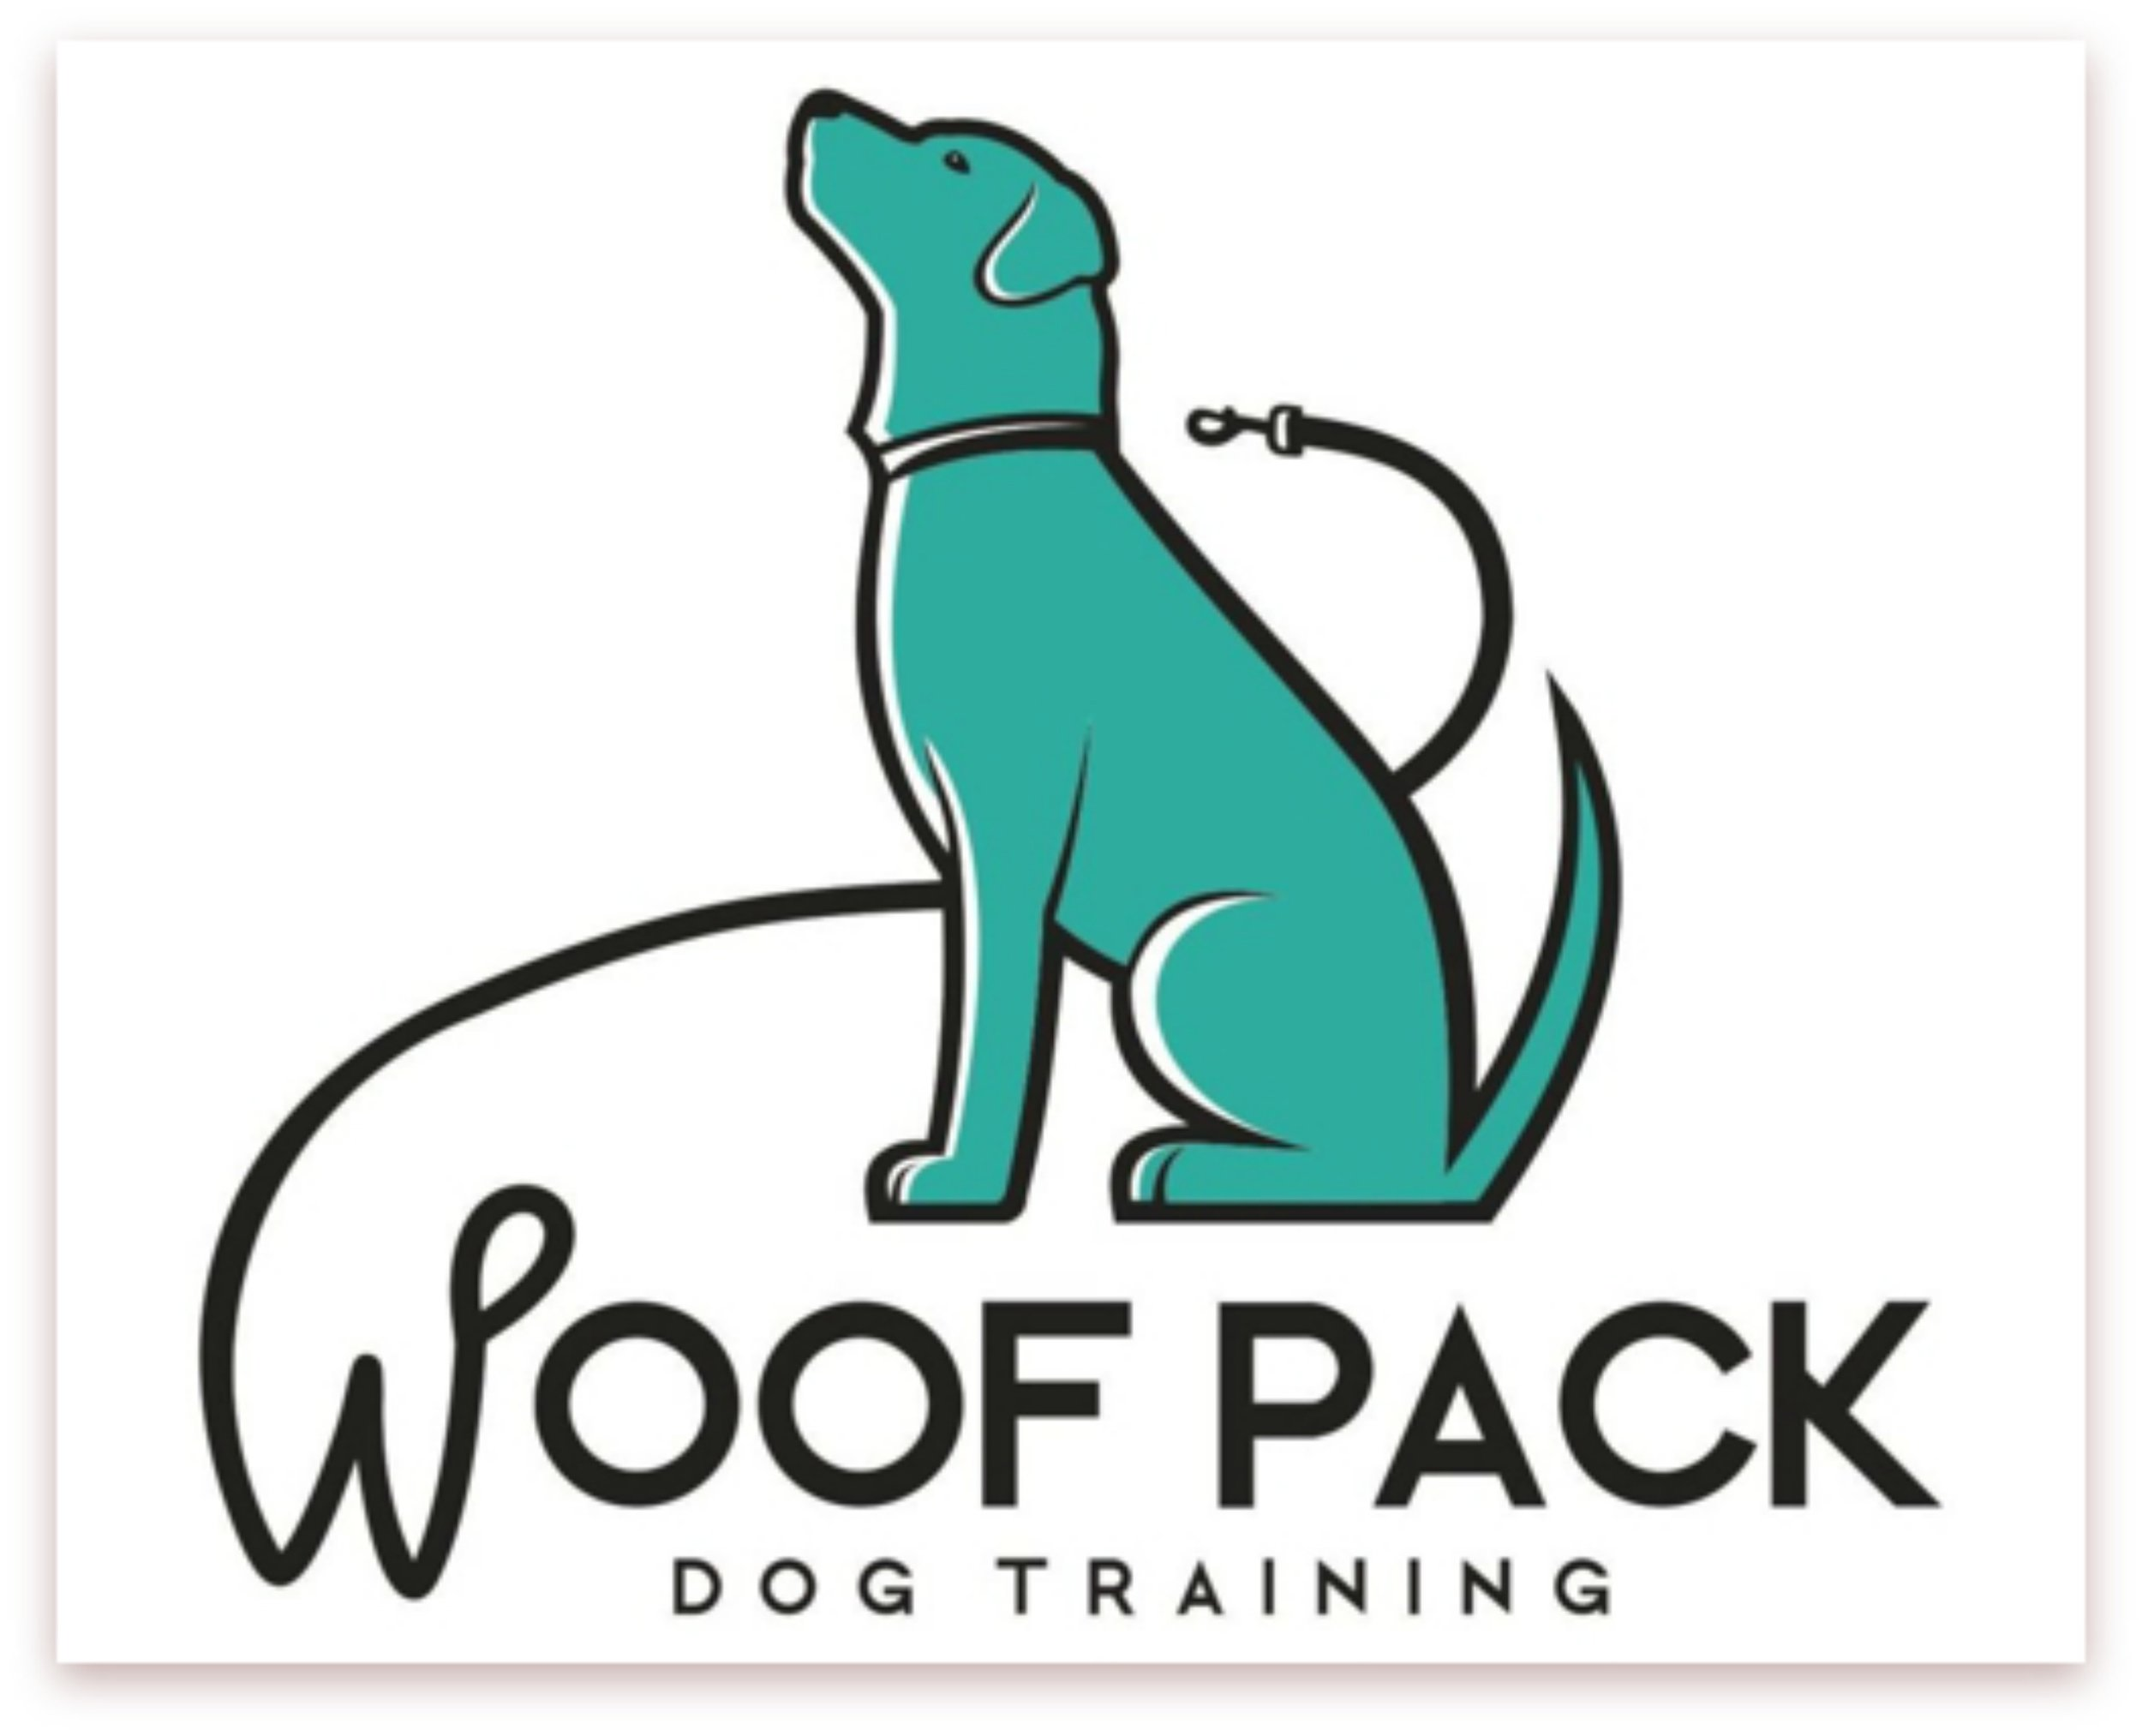 Best Dog Trainer in Los Angeles